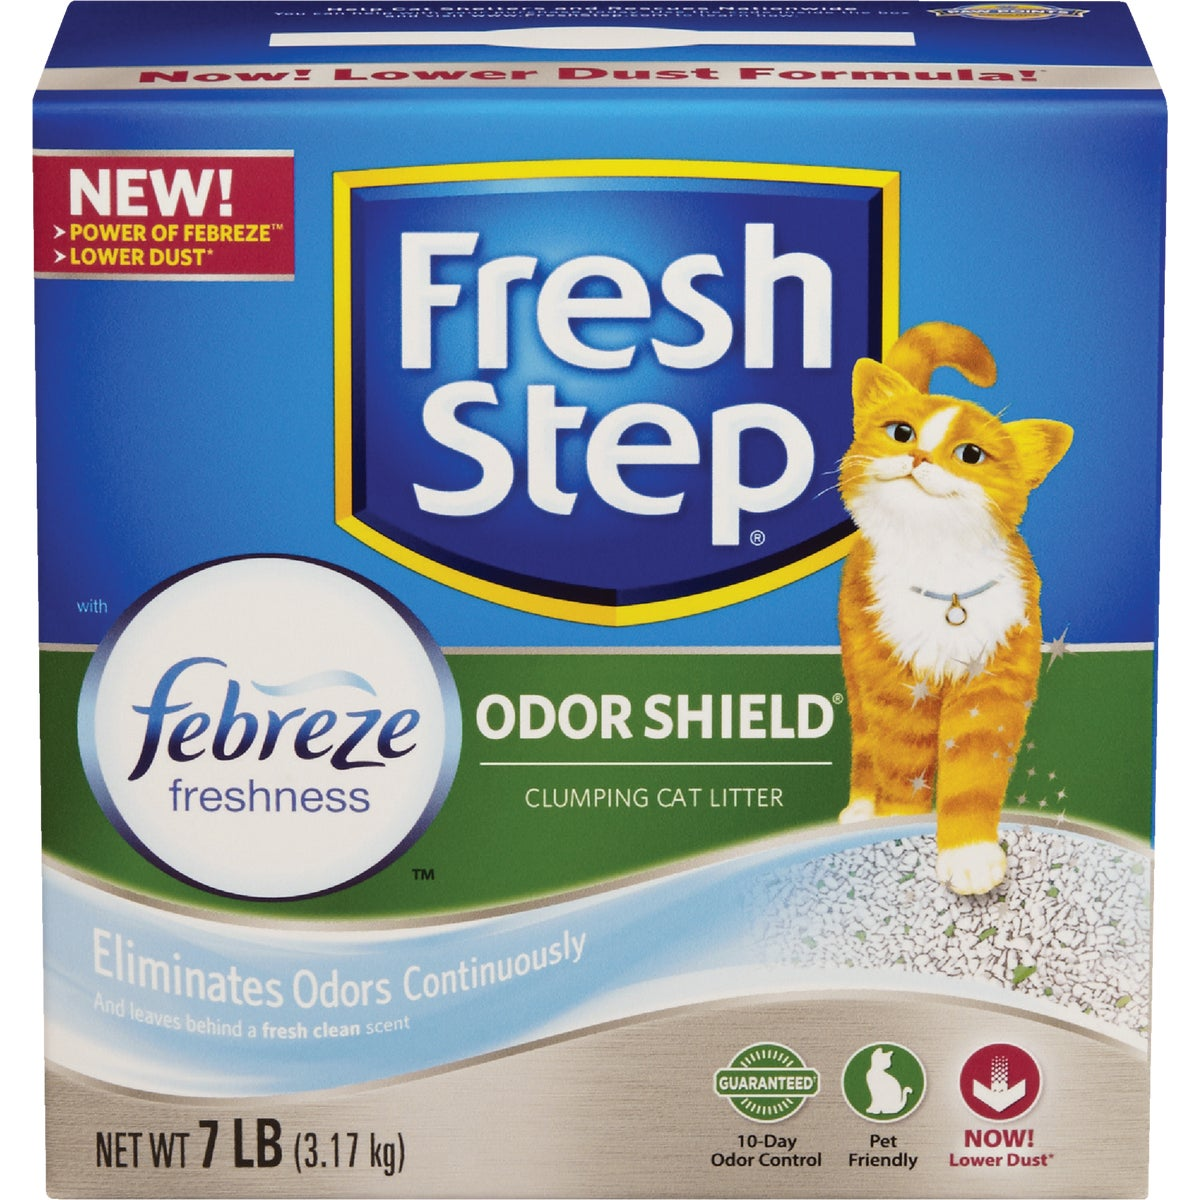 7LB FRSH STEP CAT LITTER - 30336 by Clorox/home Cleaning